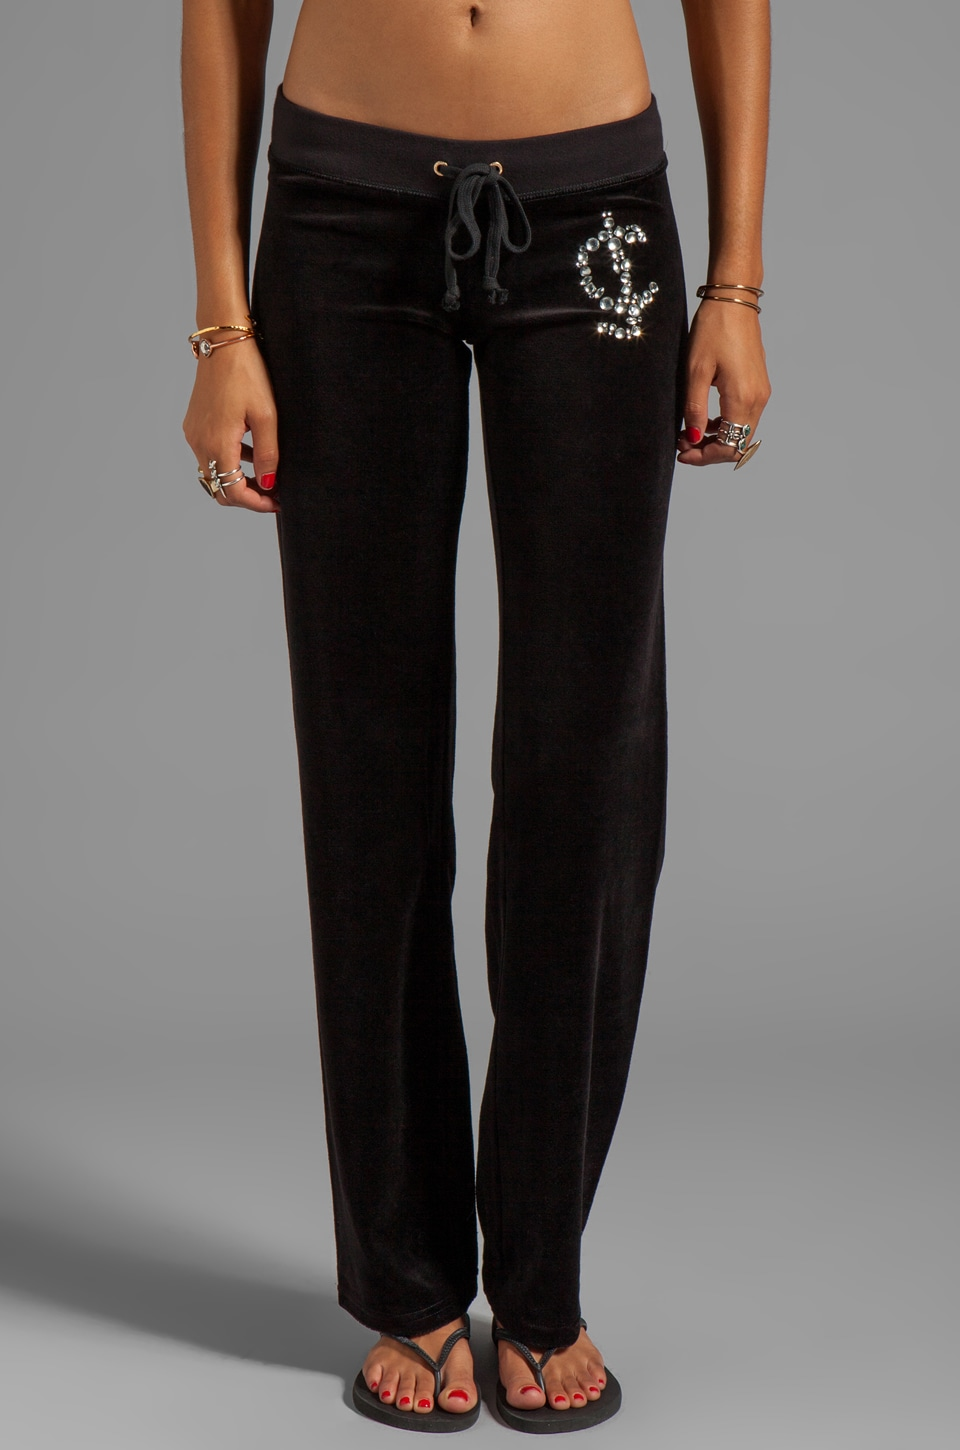 Juicy Couture Velour Juicy Rocks Pant in Black